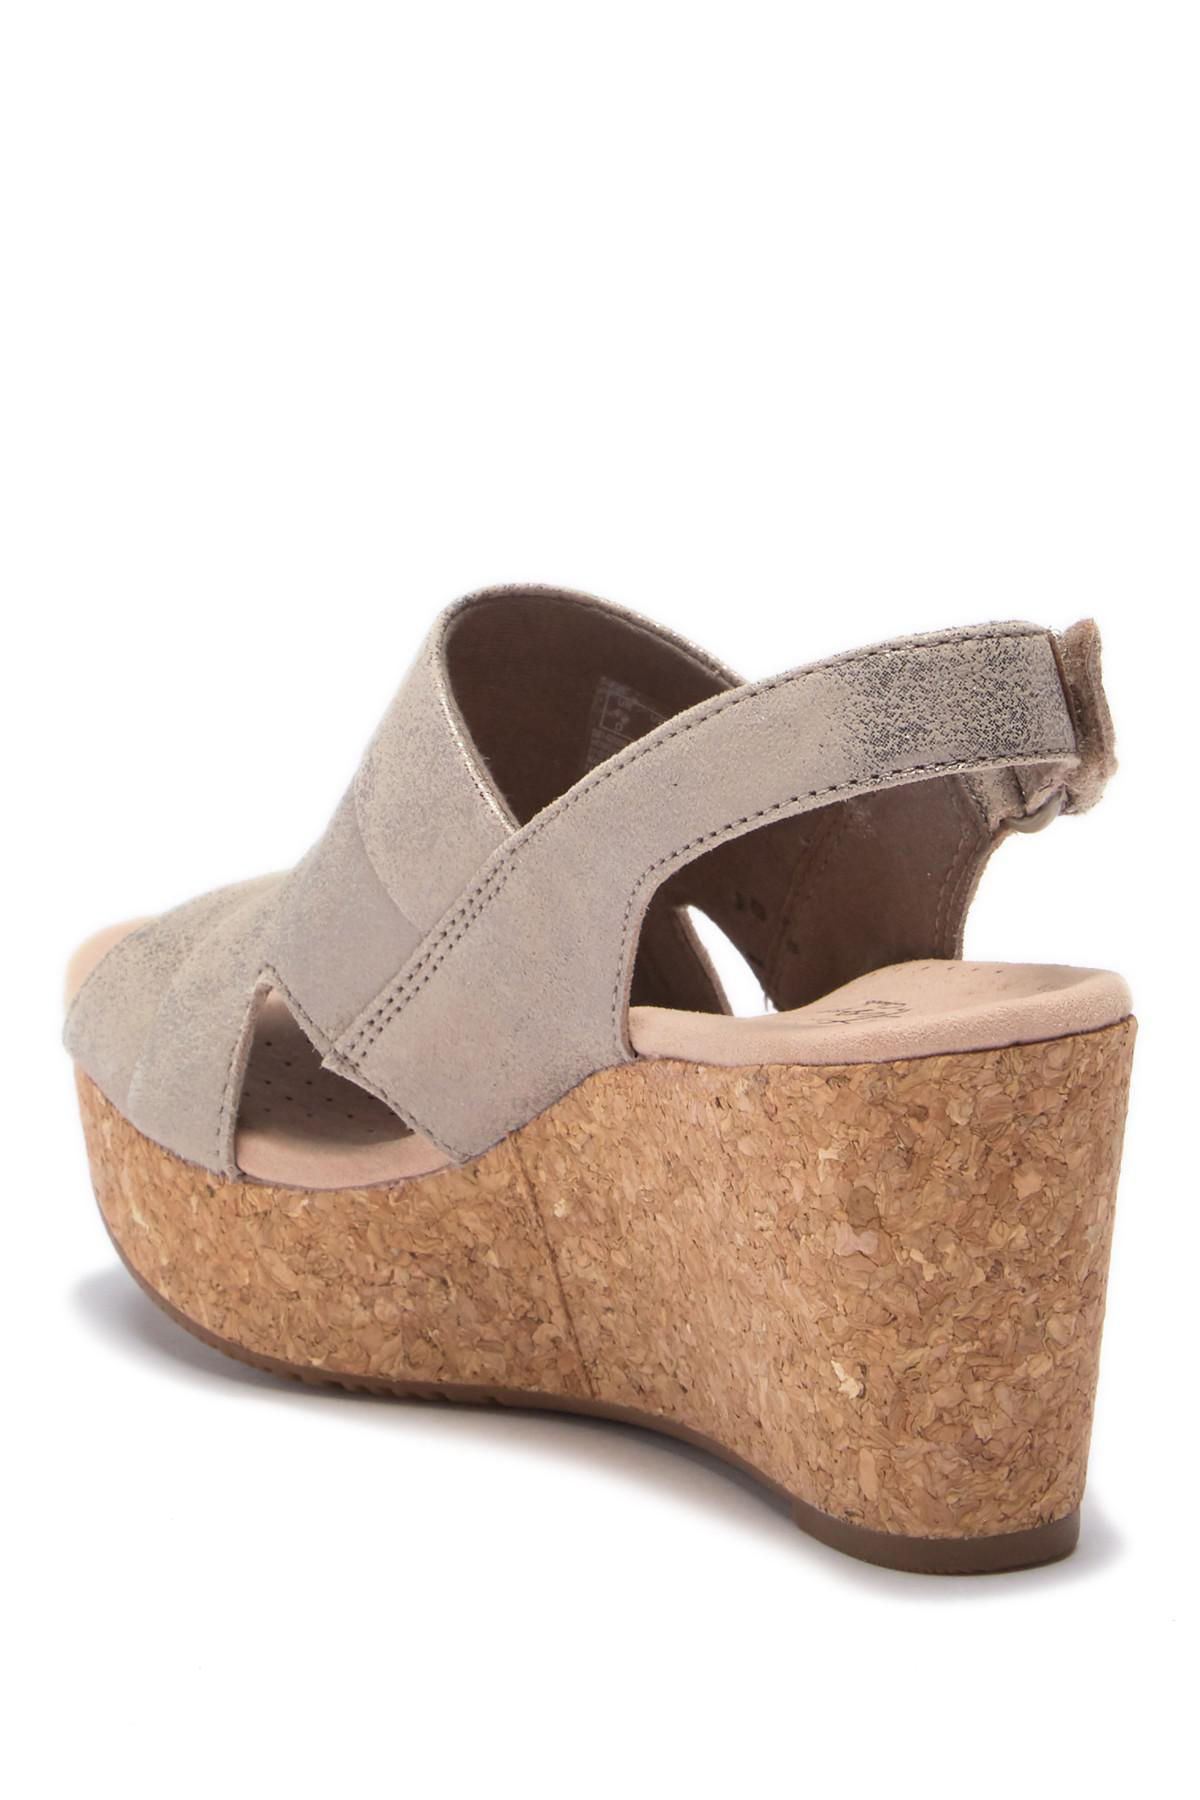 8f09c5c9486 Lyst - Clarks Annadel Ivory Wedge Sandal - Wide Widths Available in ...